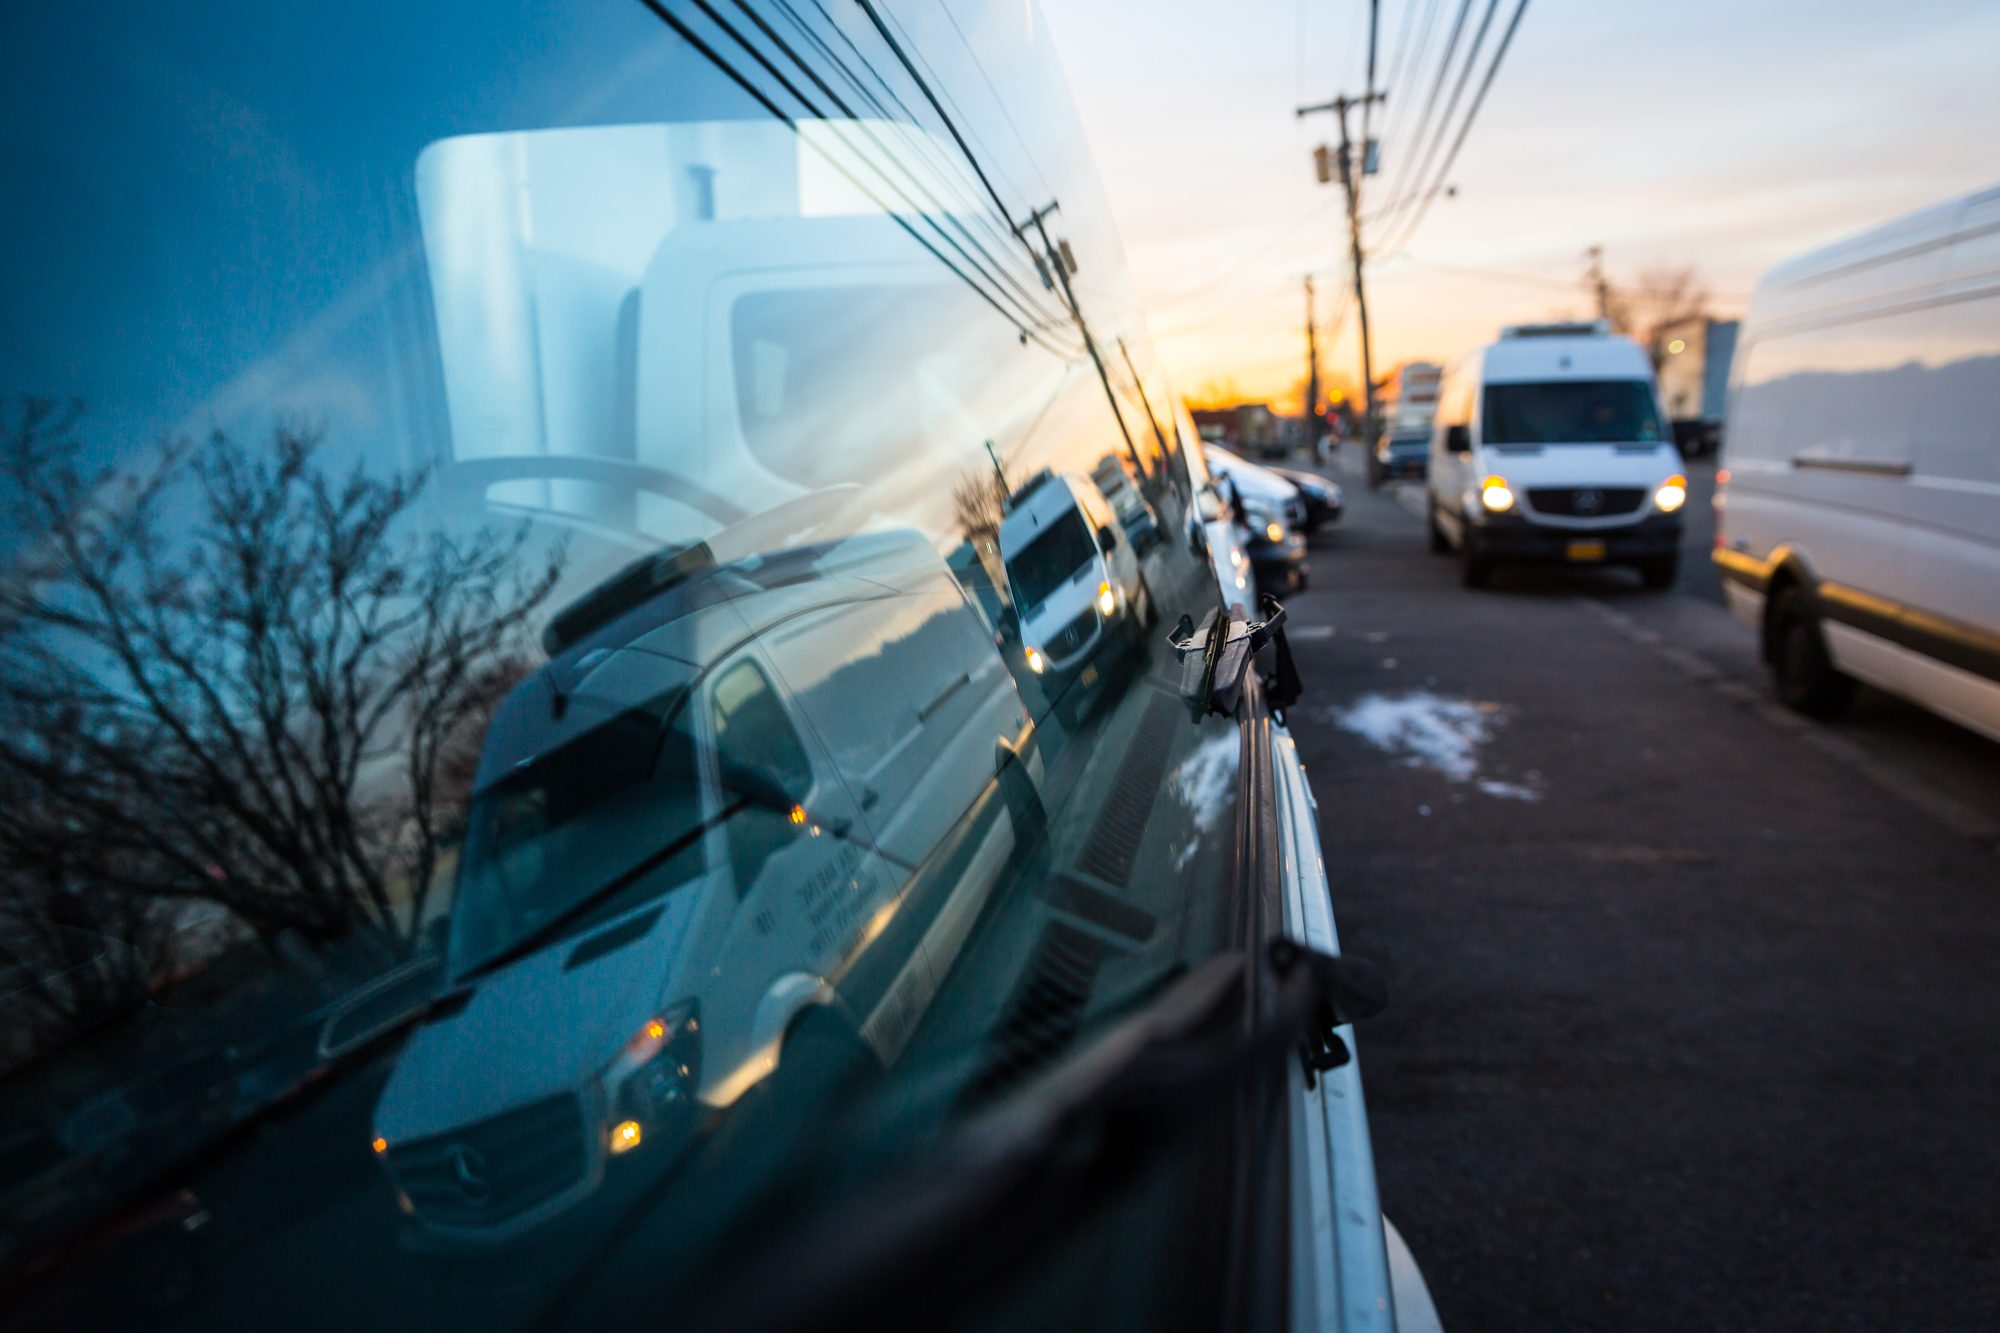 Trucks in a window reflection for an article on website photography tips